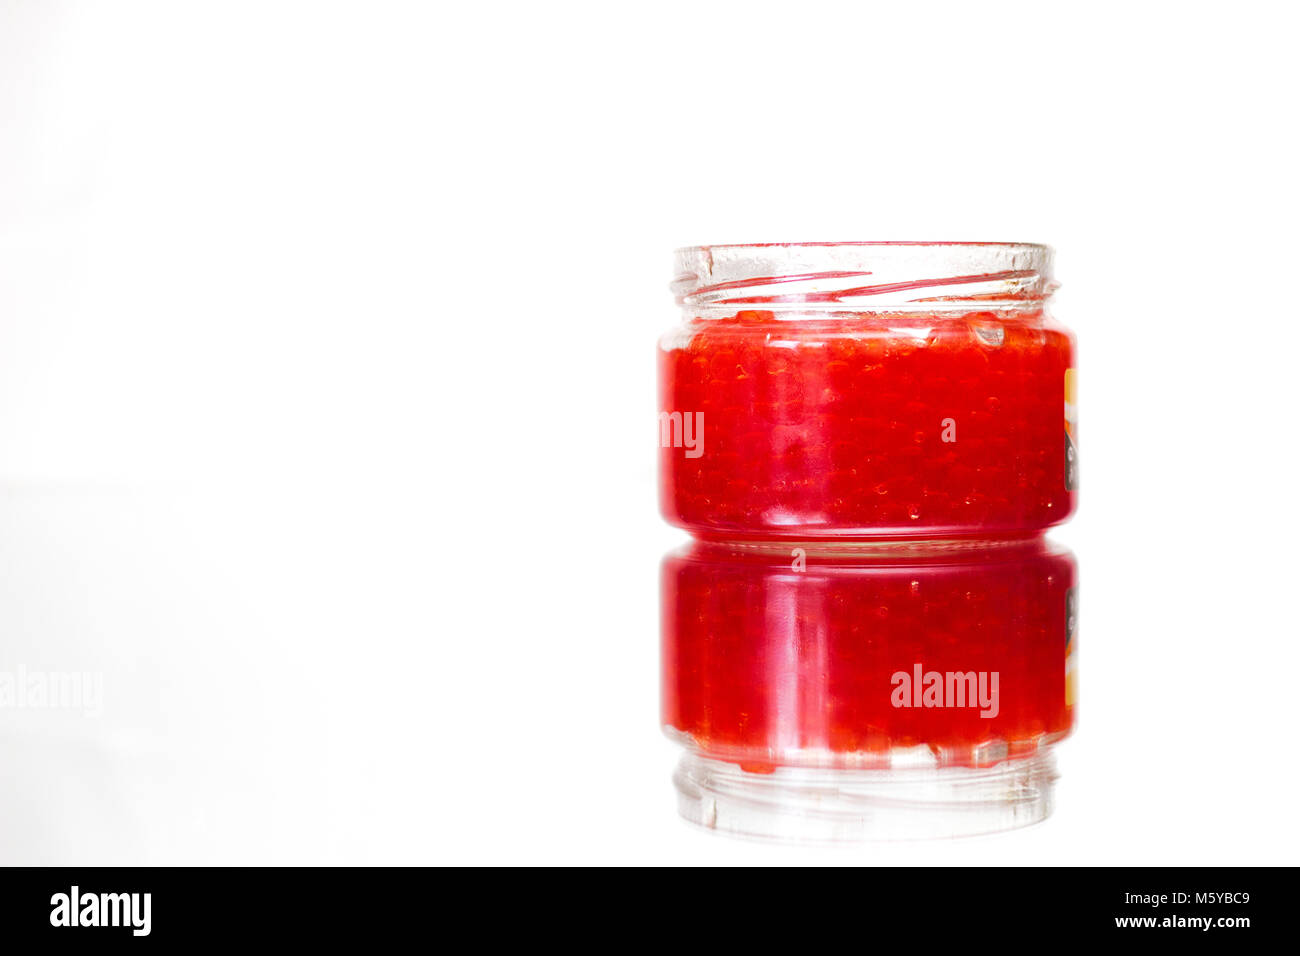 can of red caviar - Stock Image